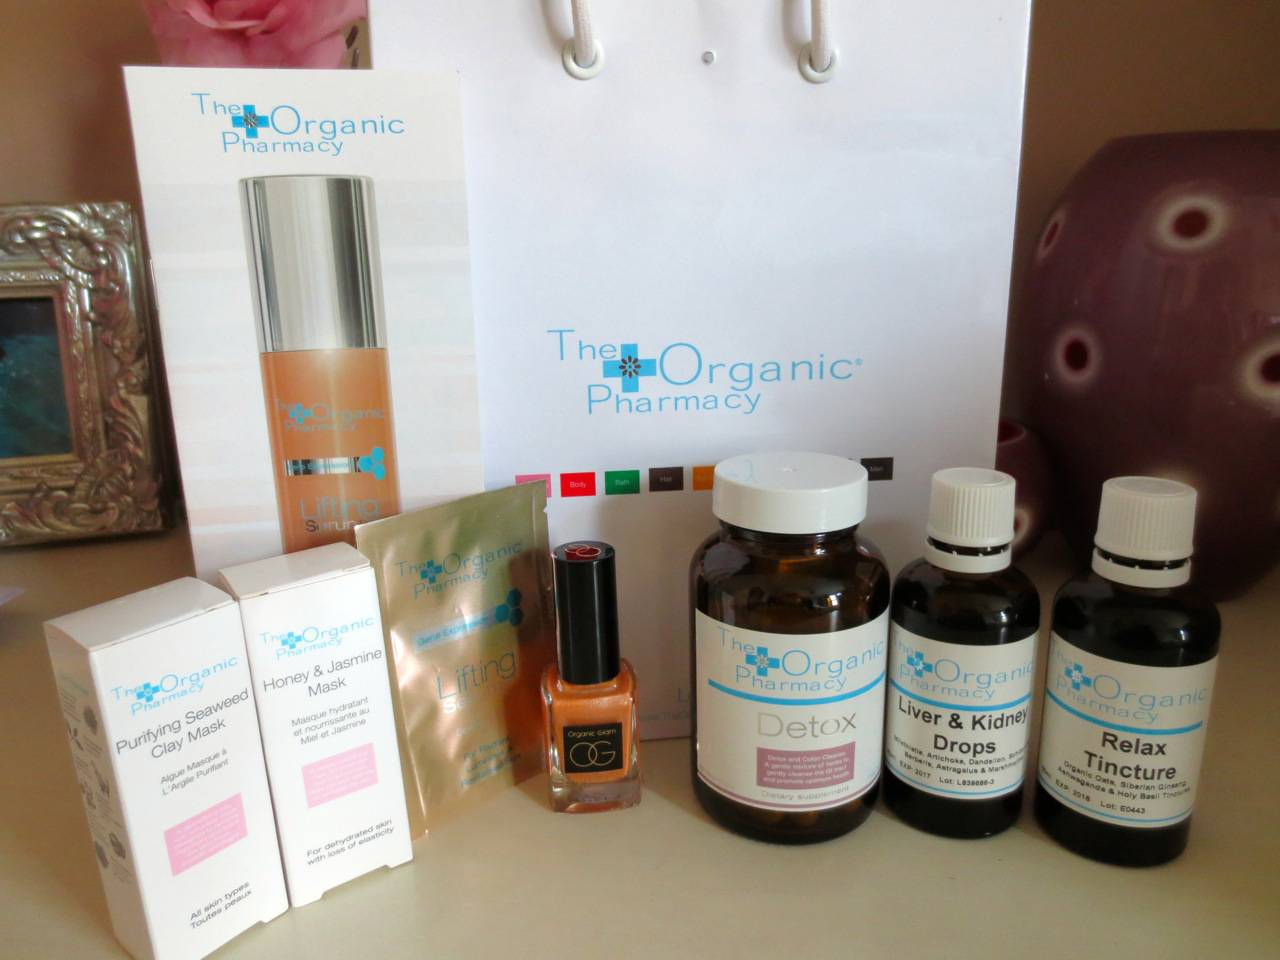 I'm on a 10-day detox with the Organic Pharmacy – better sleep, better skin, better mood are on the menu